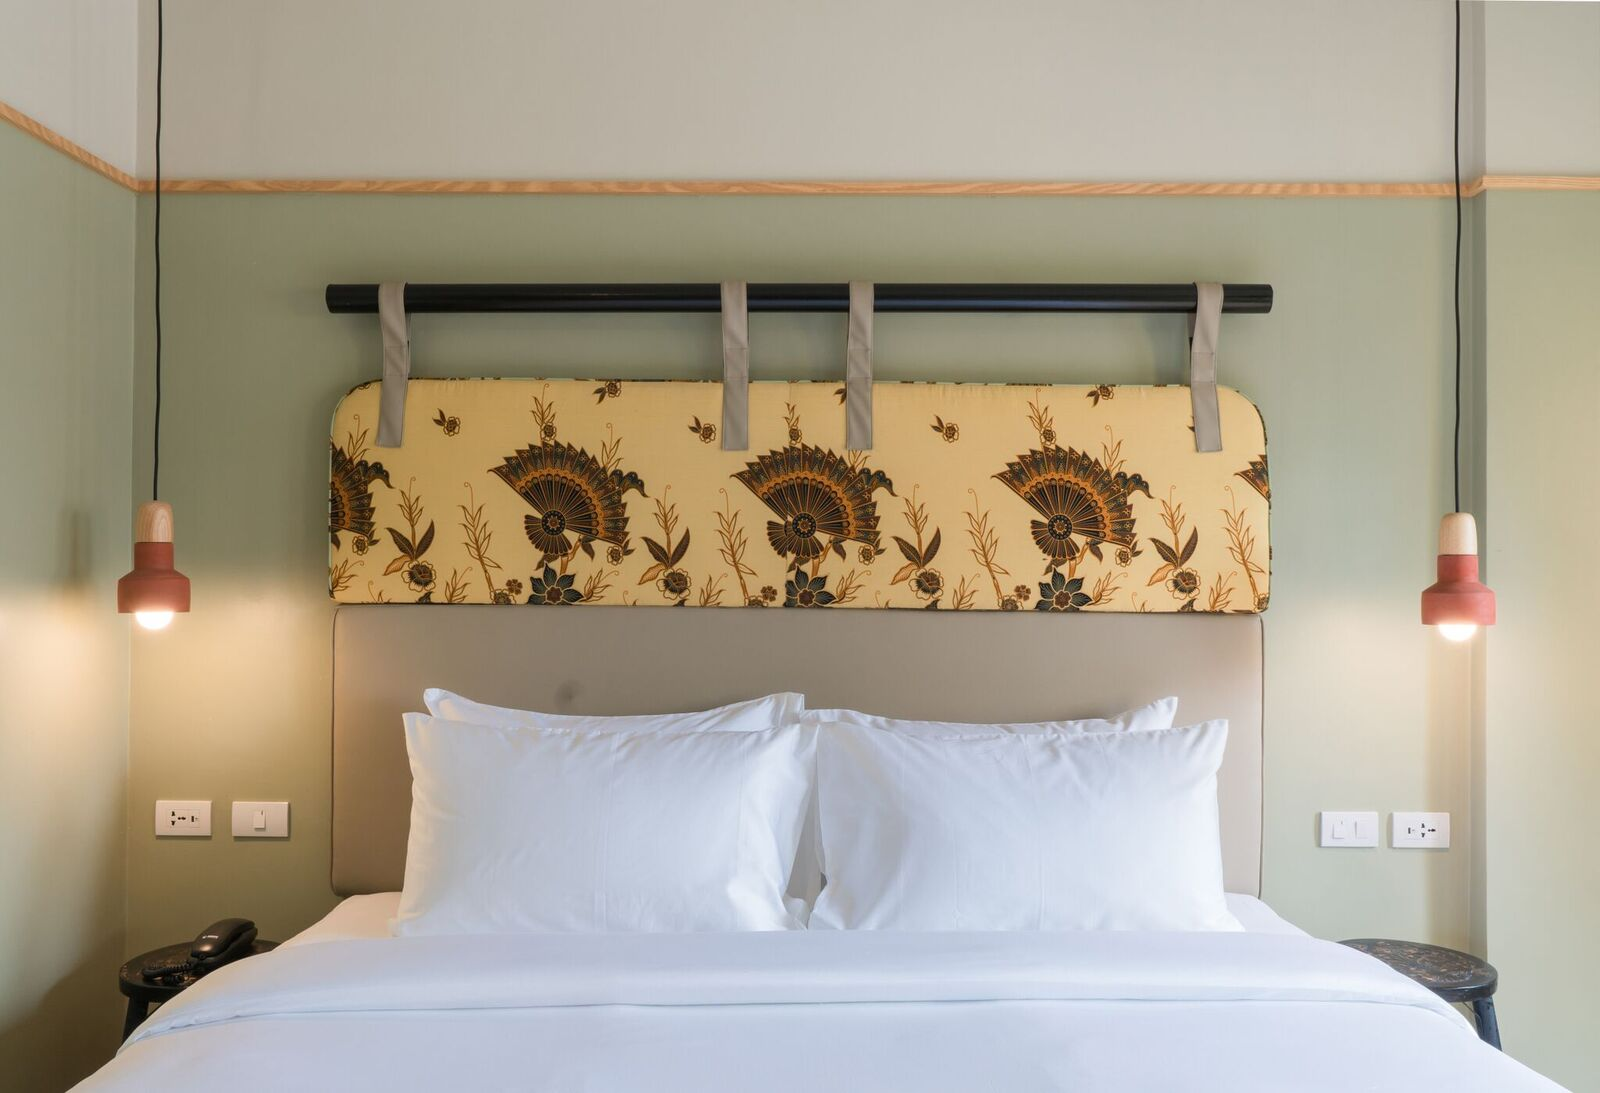 Bed and custom fabric headboard in guestroom at Blanket Hotel Phuket Town